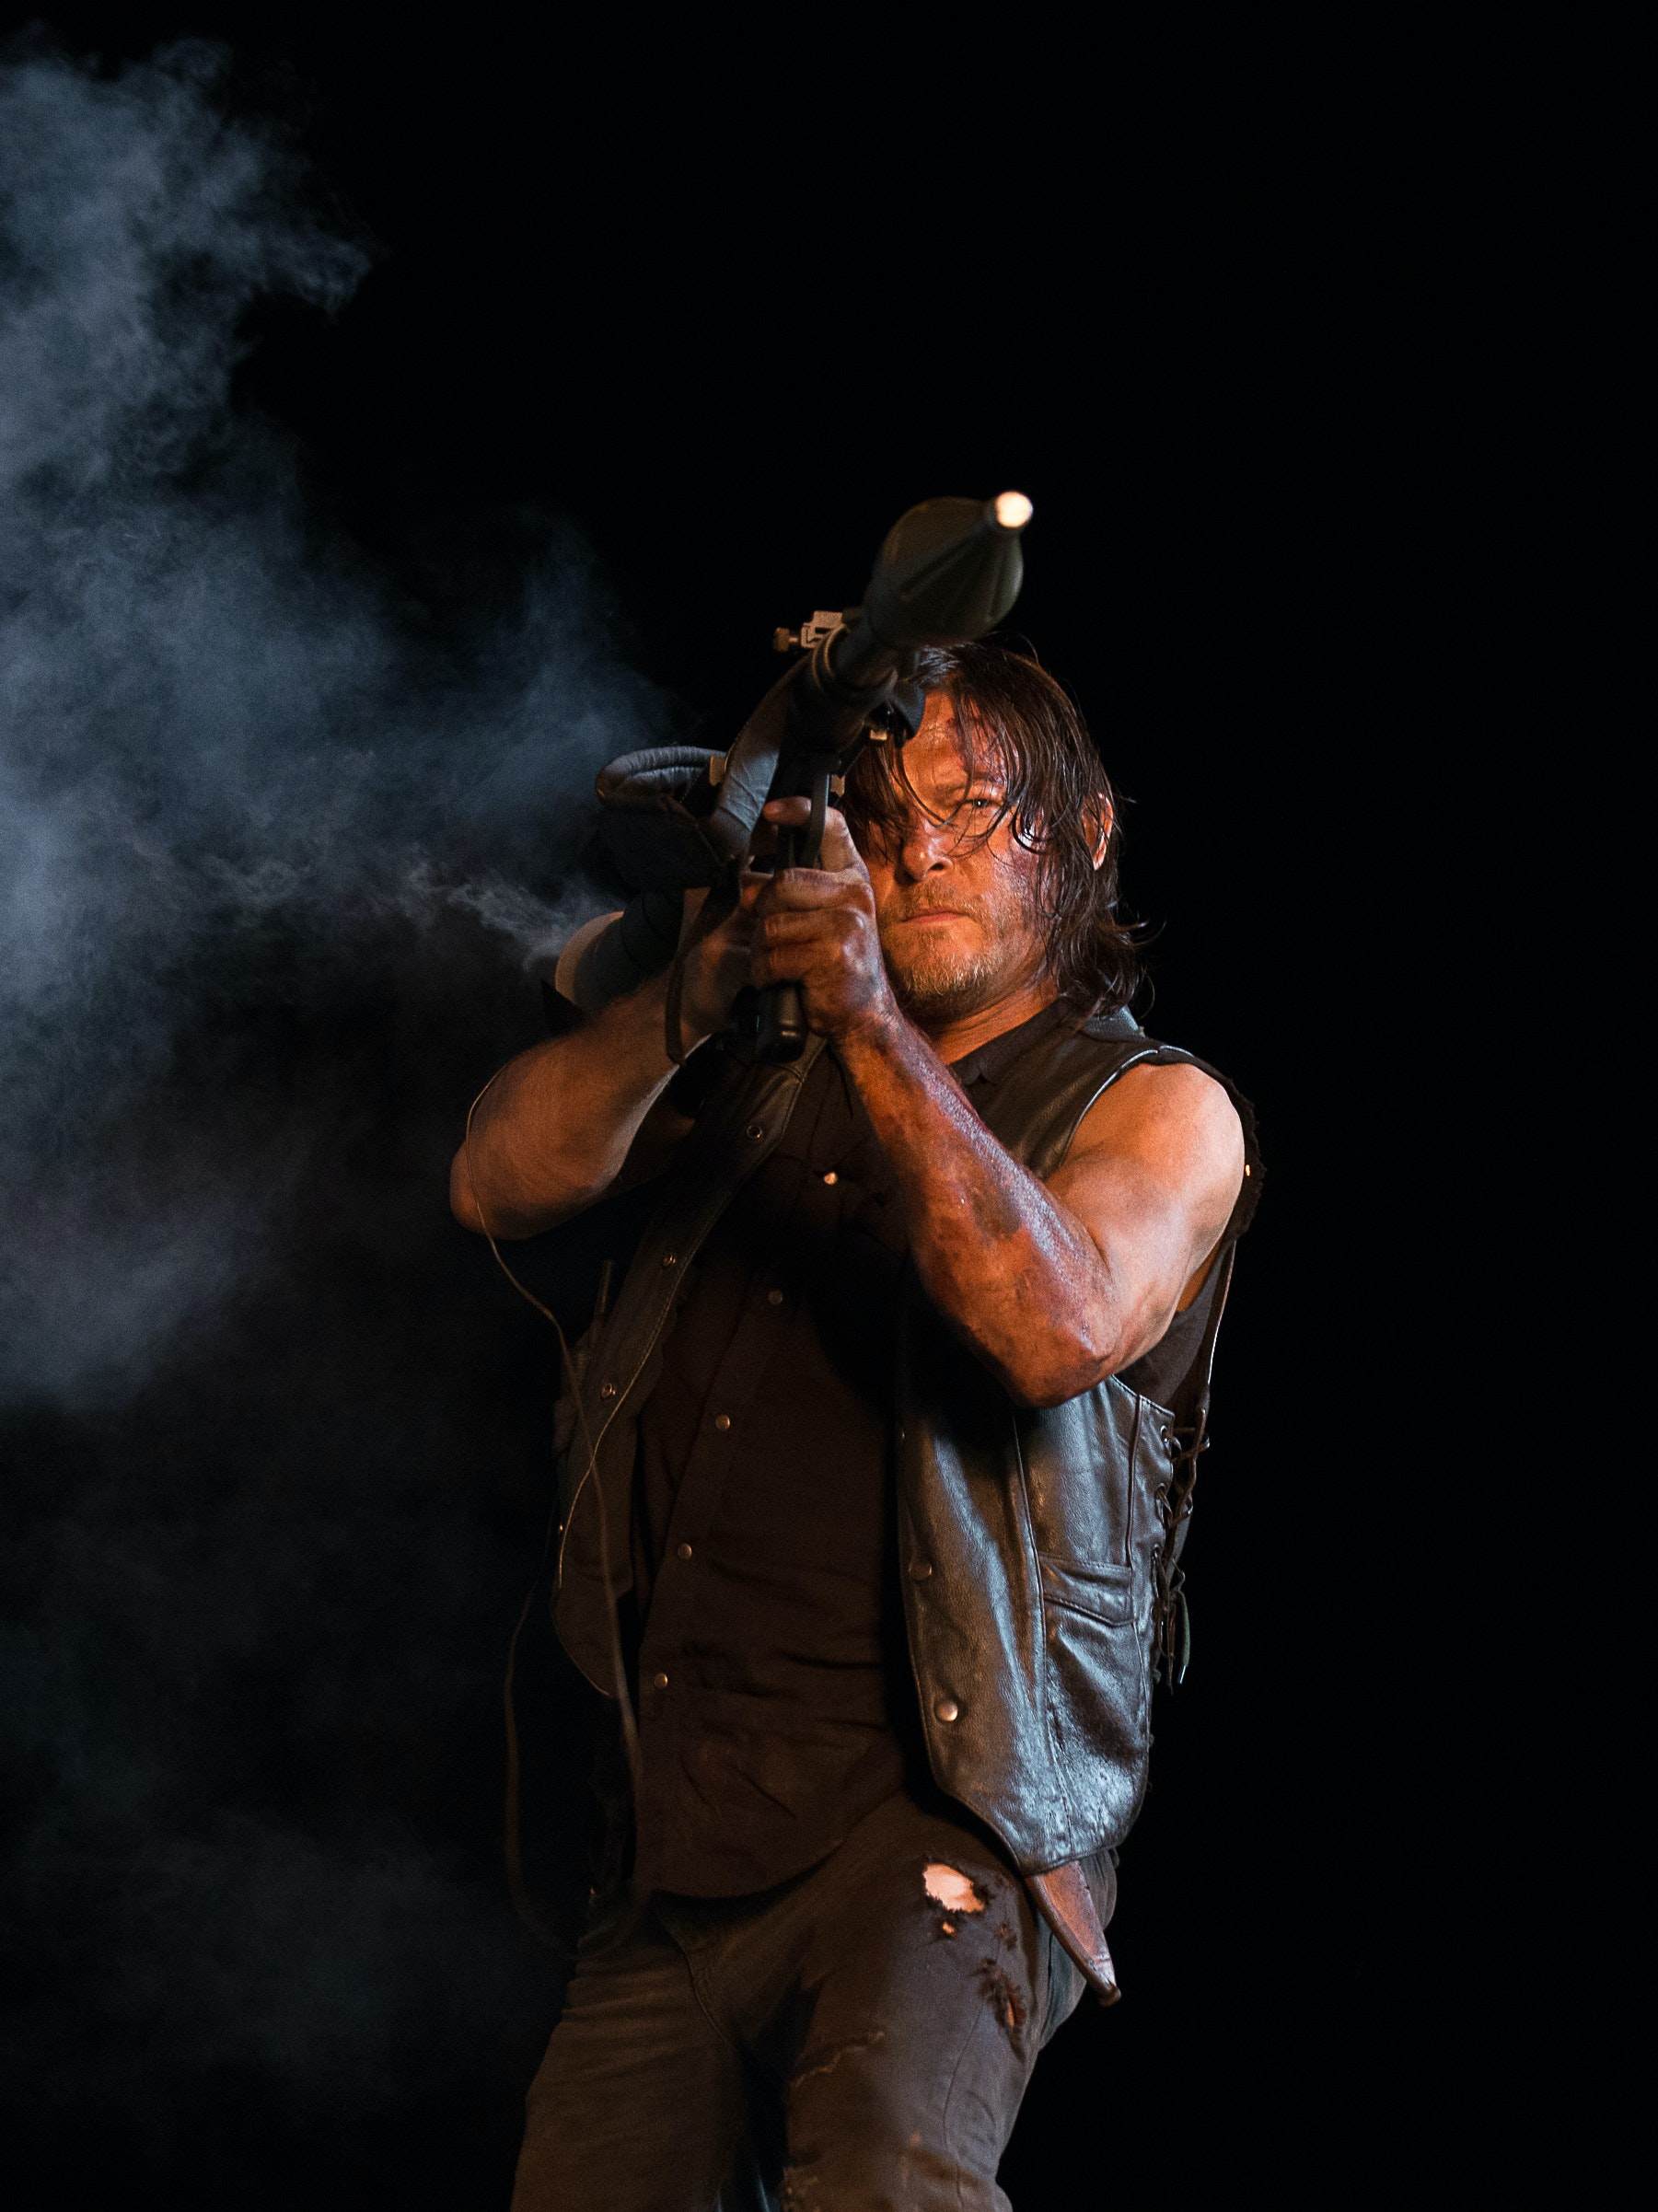 the walking dead season 6 return gives power back to the